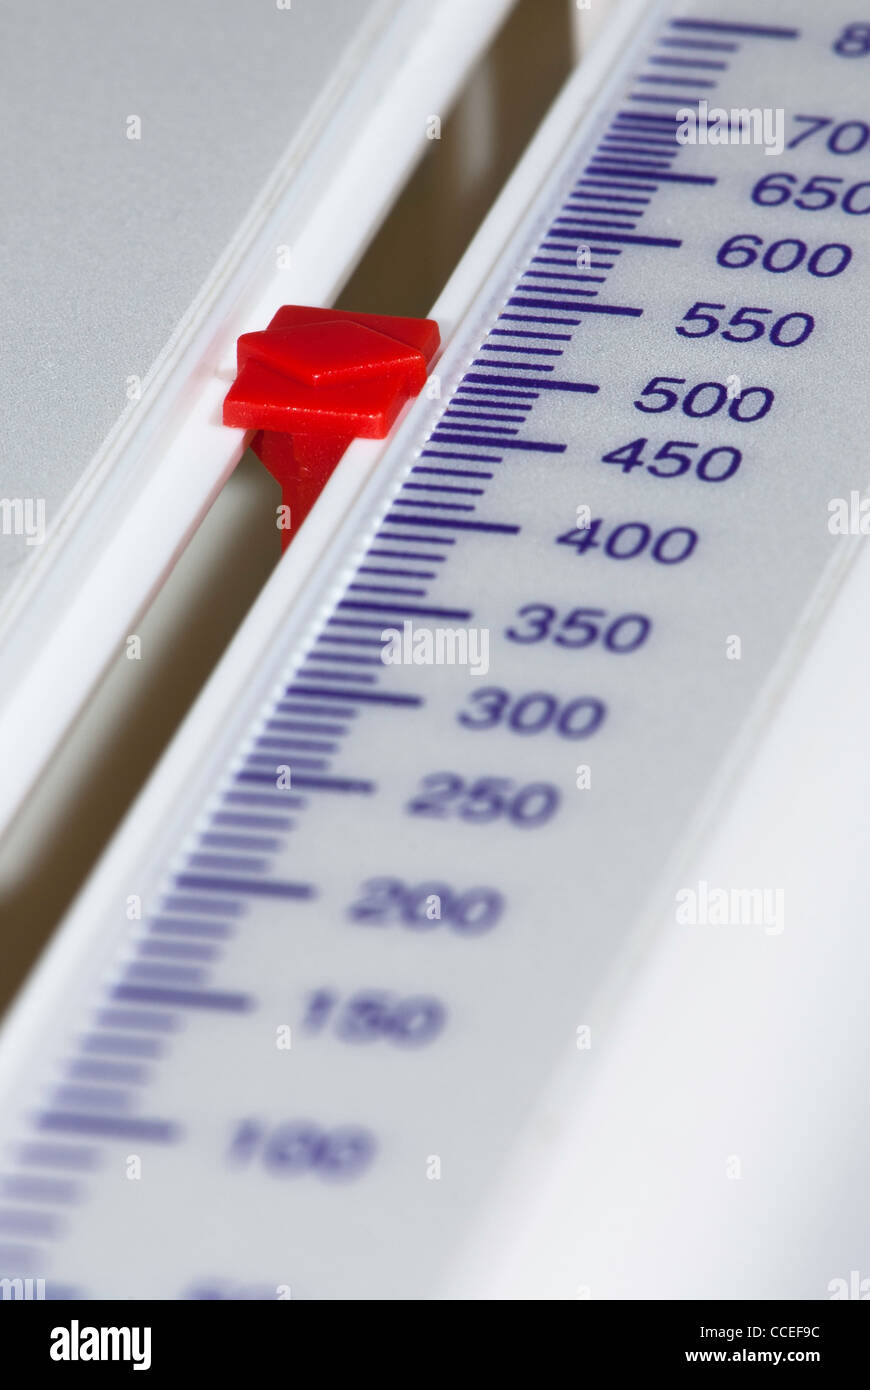 Close up of scale on a Peak flow meter, at 500. - Stock Image